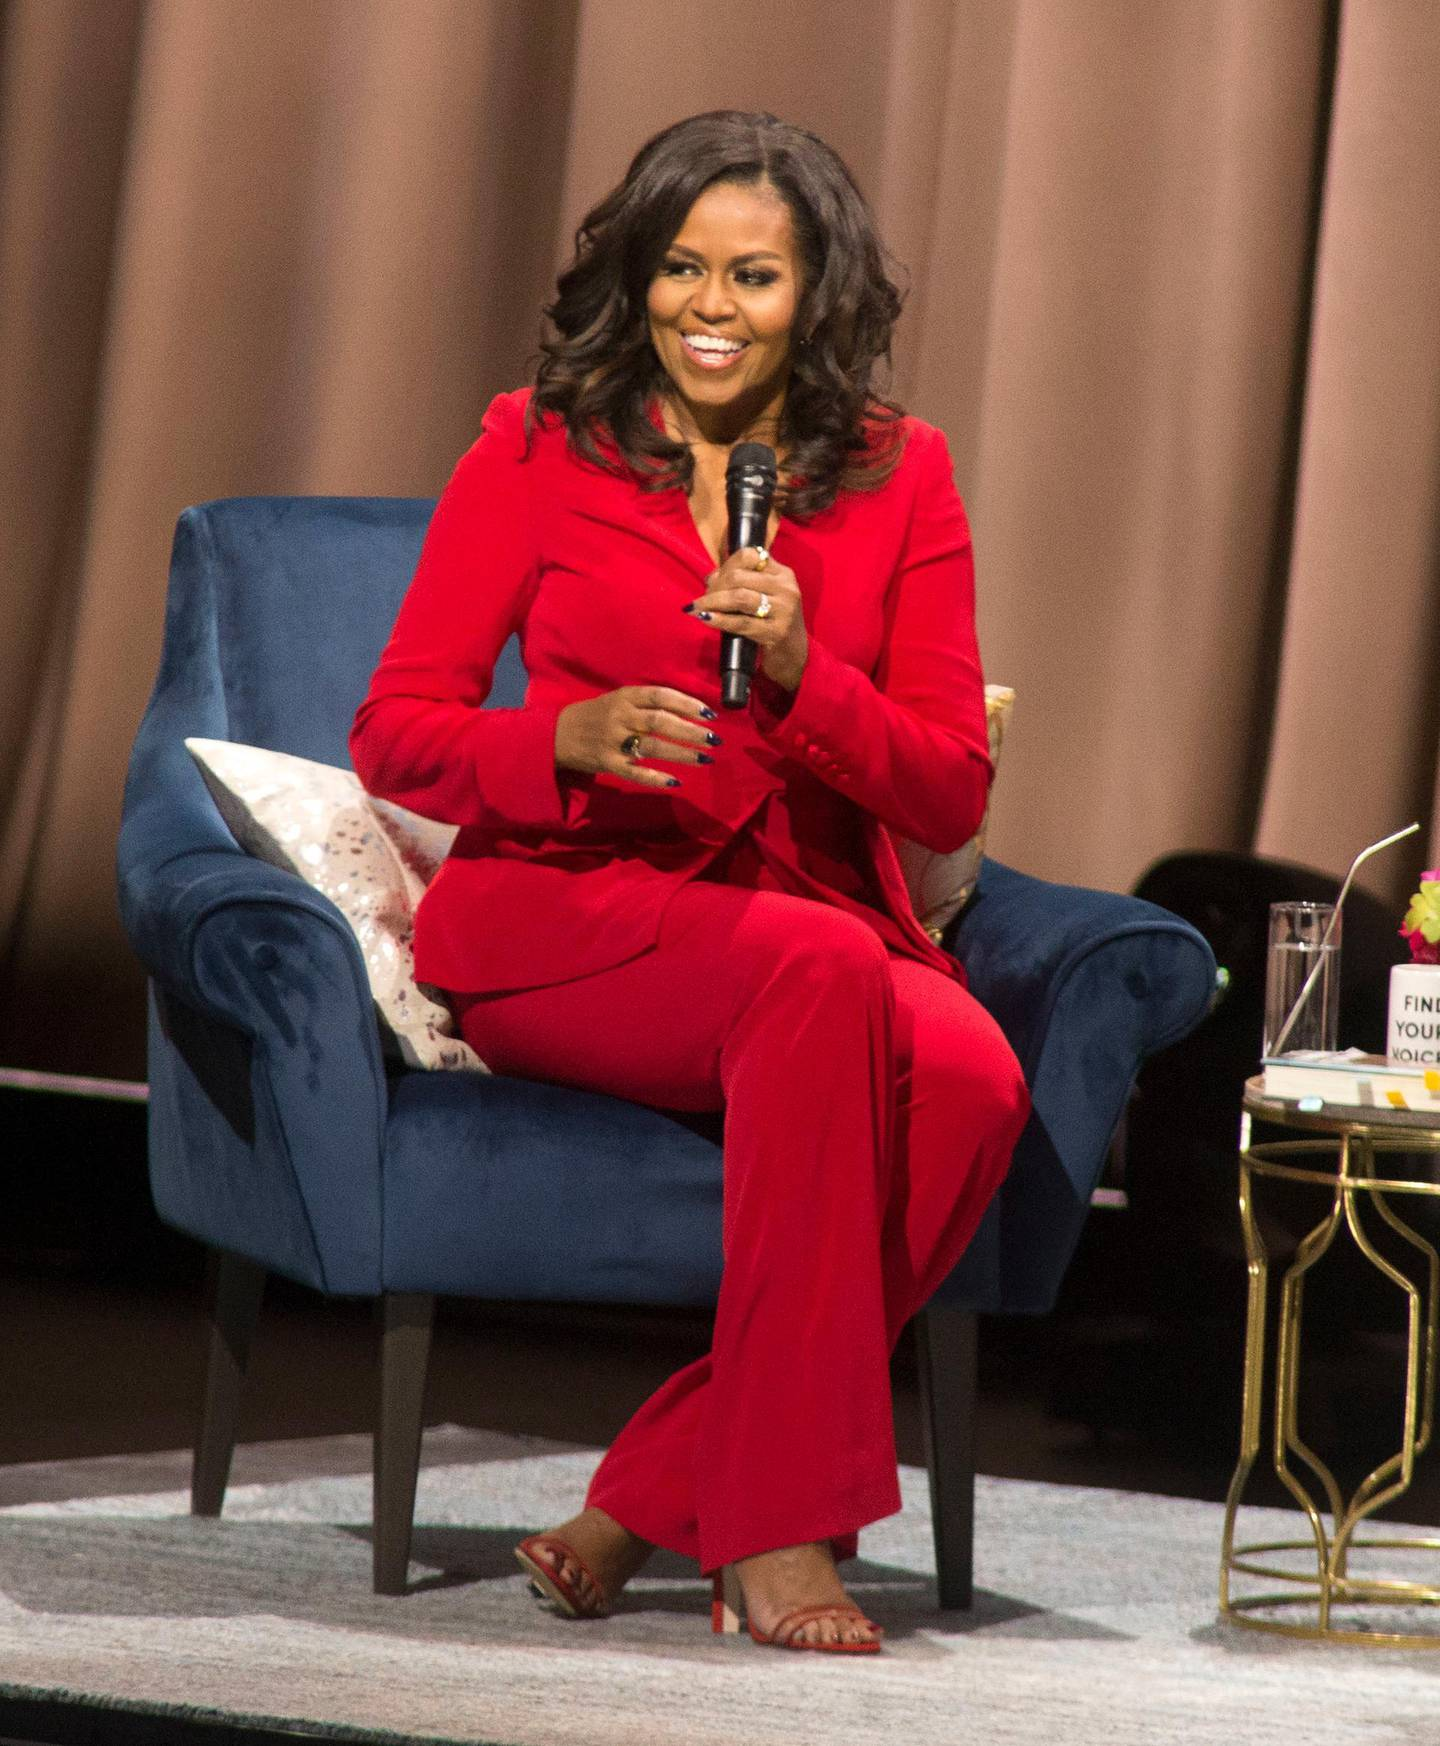 """Former first lady Michelle Obama speaks at the """"Becoming: An Intimate Conversation with Michelle Obama"""" event at the Wells Fargo Center on Thursday, Nov. 29, 2018, in Philadelphia. (Photo by Owen Sweeney/Invision/AP)"""